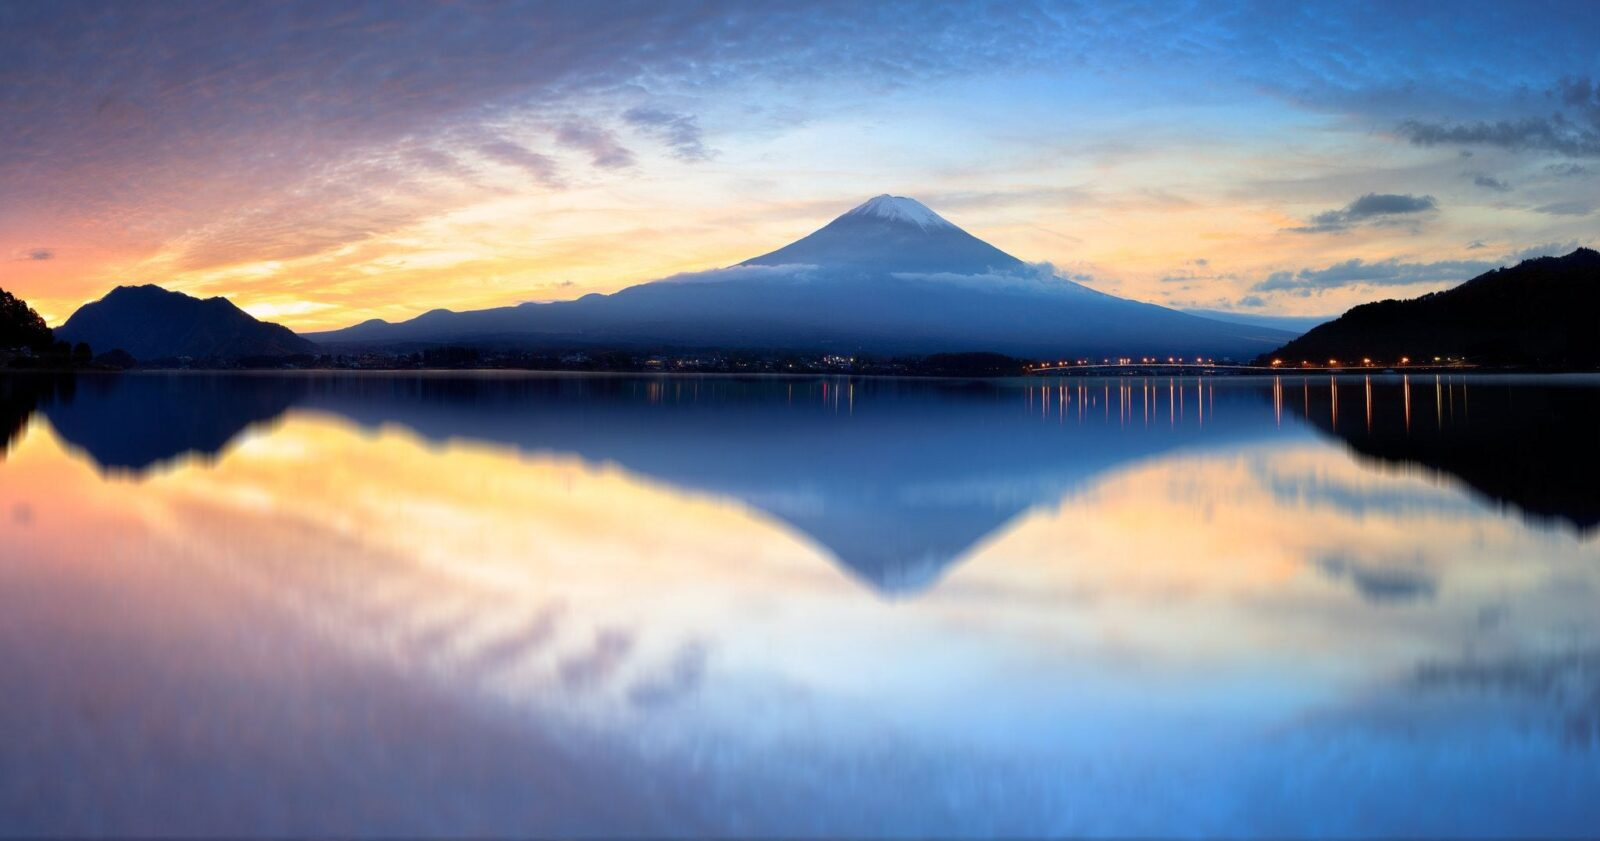 The Best Car Wallpapers Hd 36 Mount Fuji Wallpapers Hd